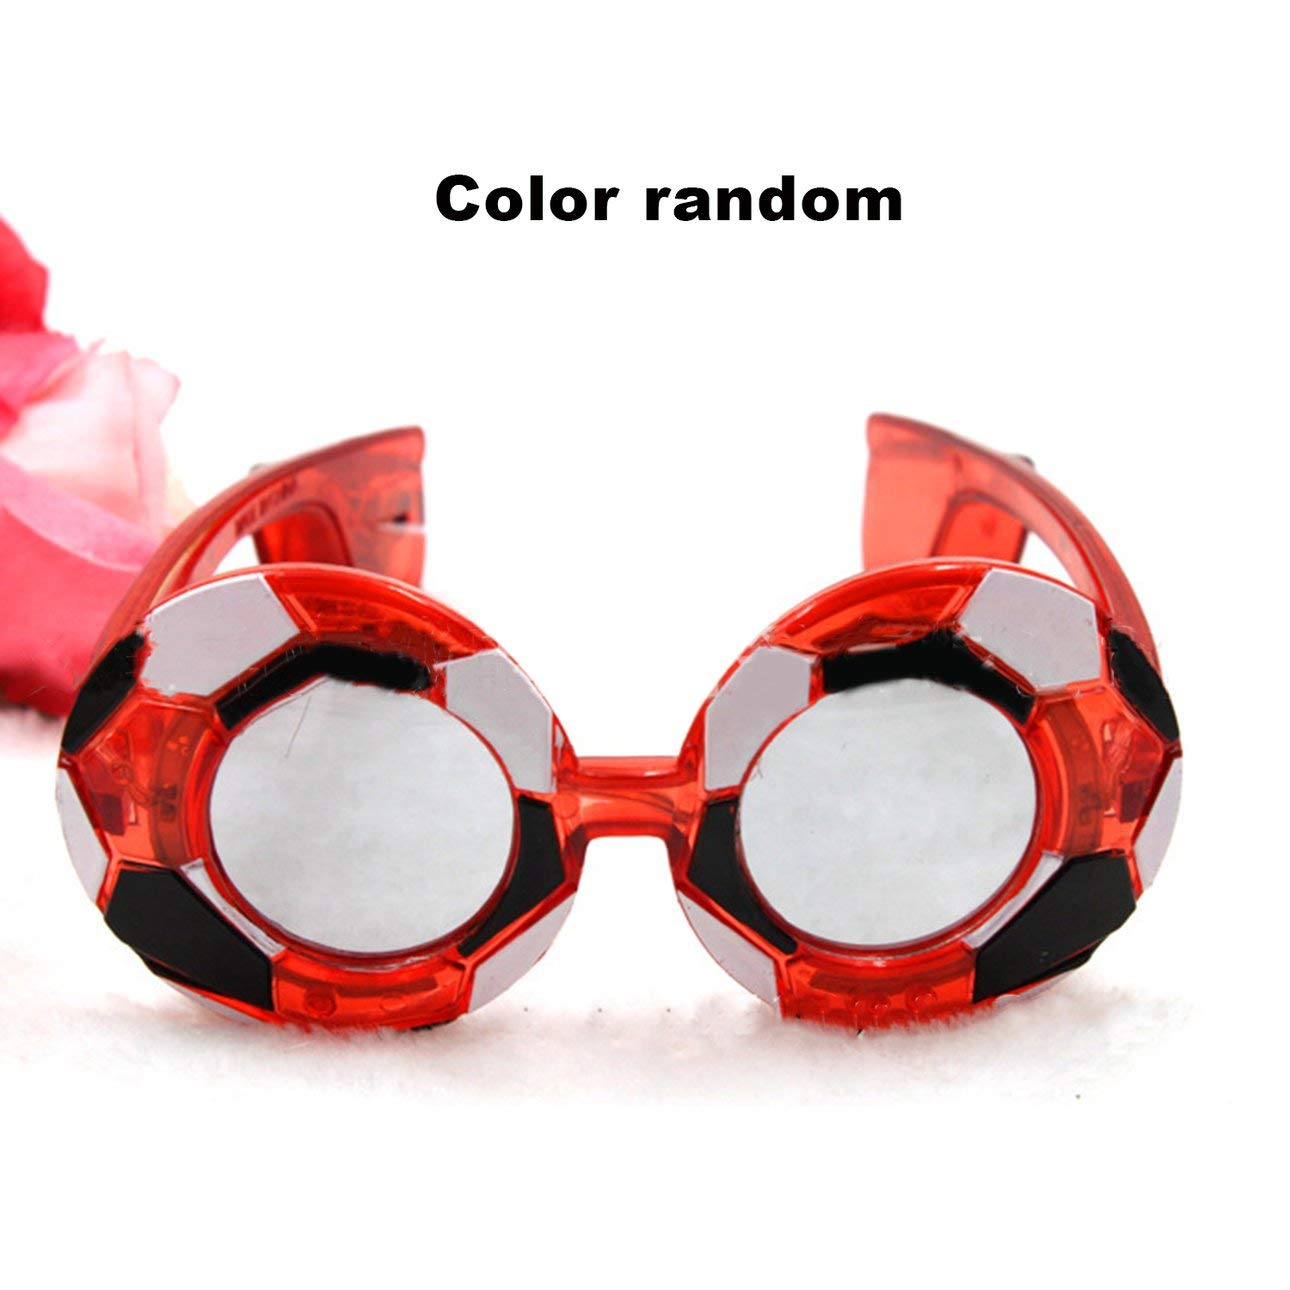 Fashion Football LED Light-Up Eye Glasses World Cup Fans Flashing Glasses Eyewear Glowing Party Christmas Year Supplies